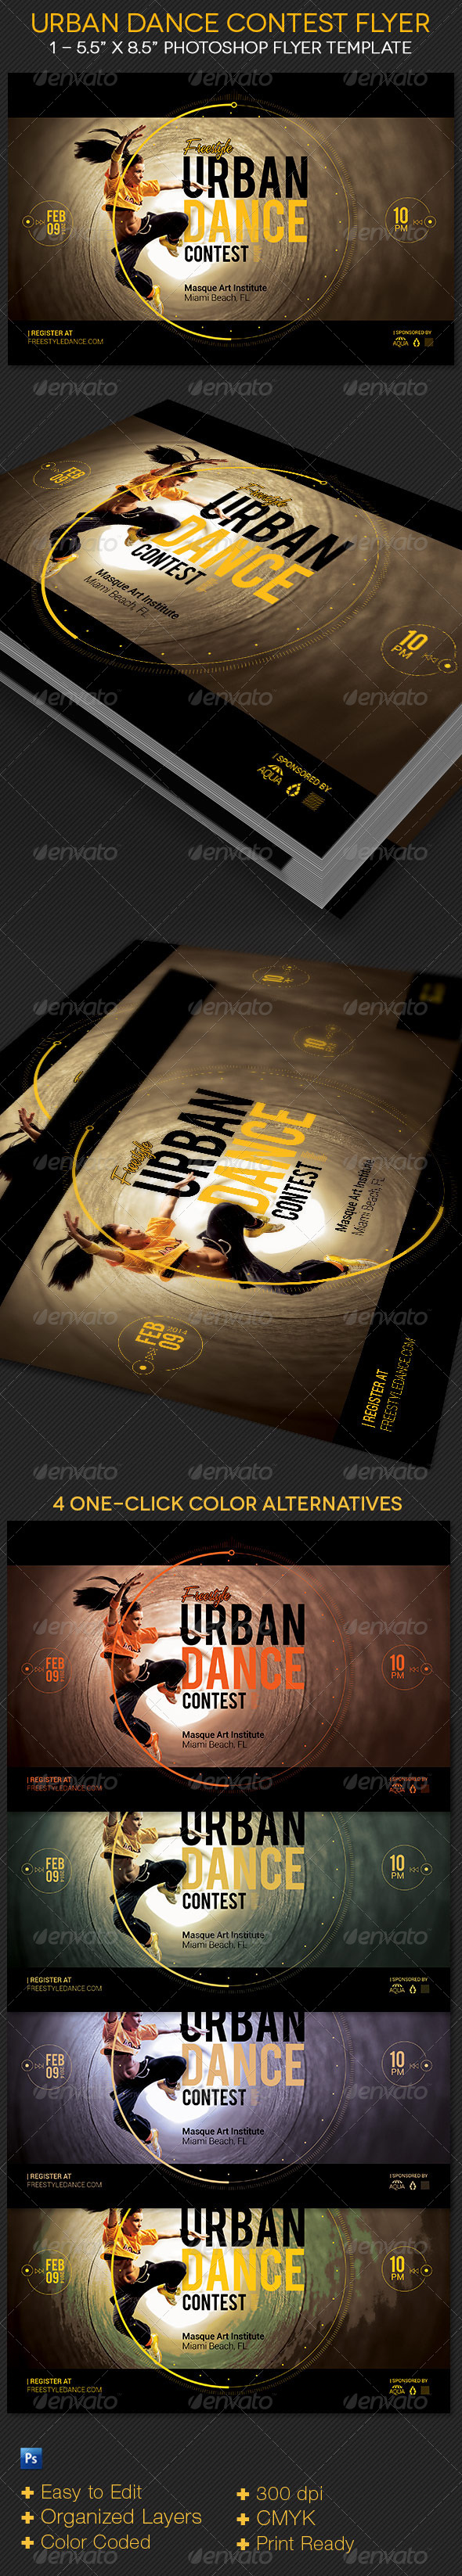 GraphicRiver Urban Dance Contest Flyer Template 7949759